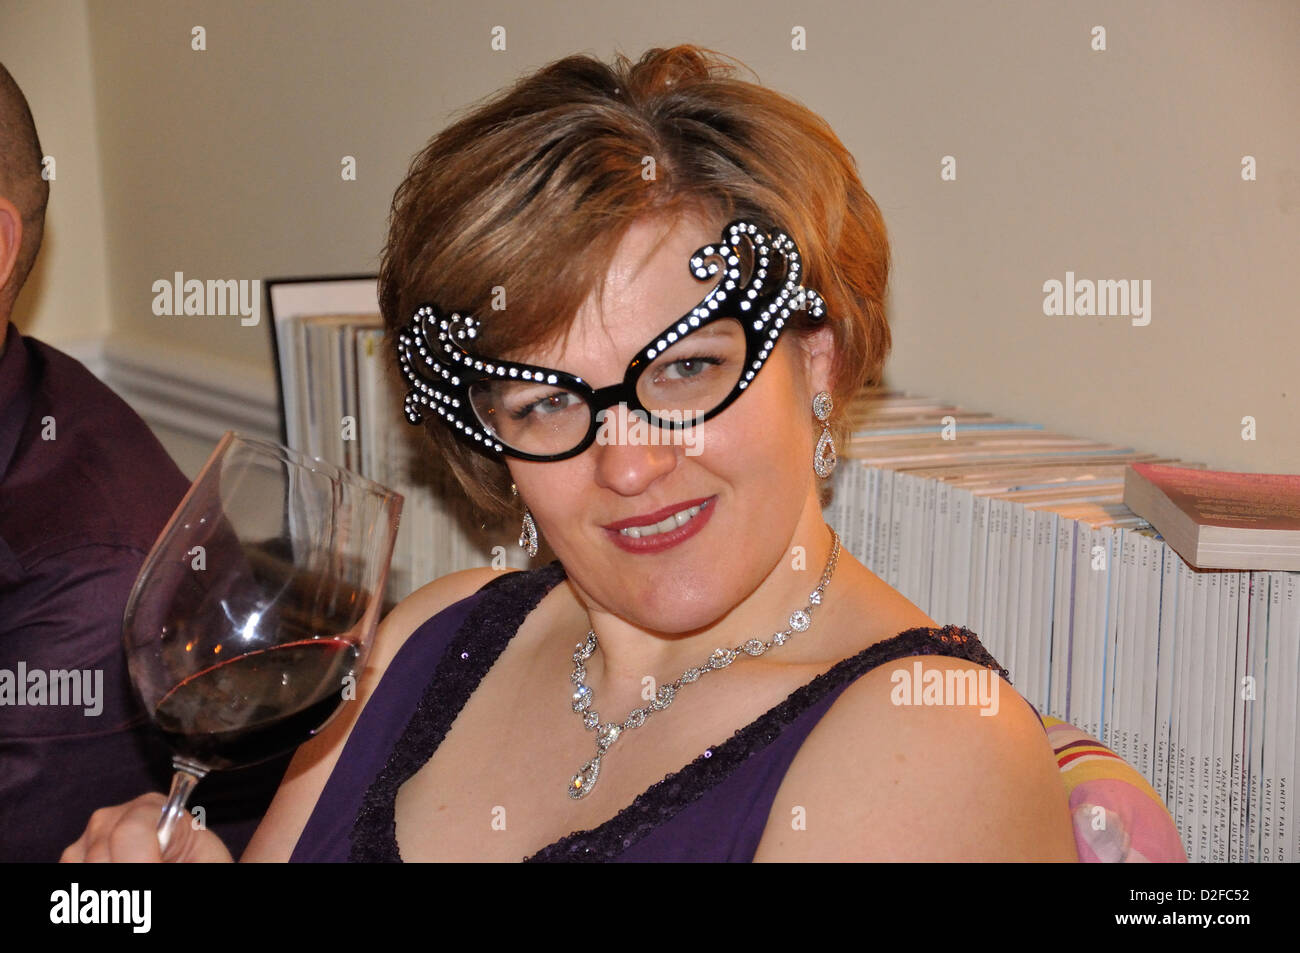 Woman wearing fun glasses at Secret Supper Society dinner, Somerton, Oxfordshire, England, United Kingdom - Stock Image